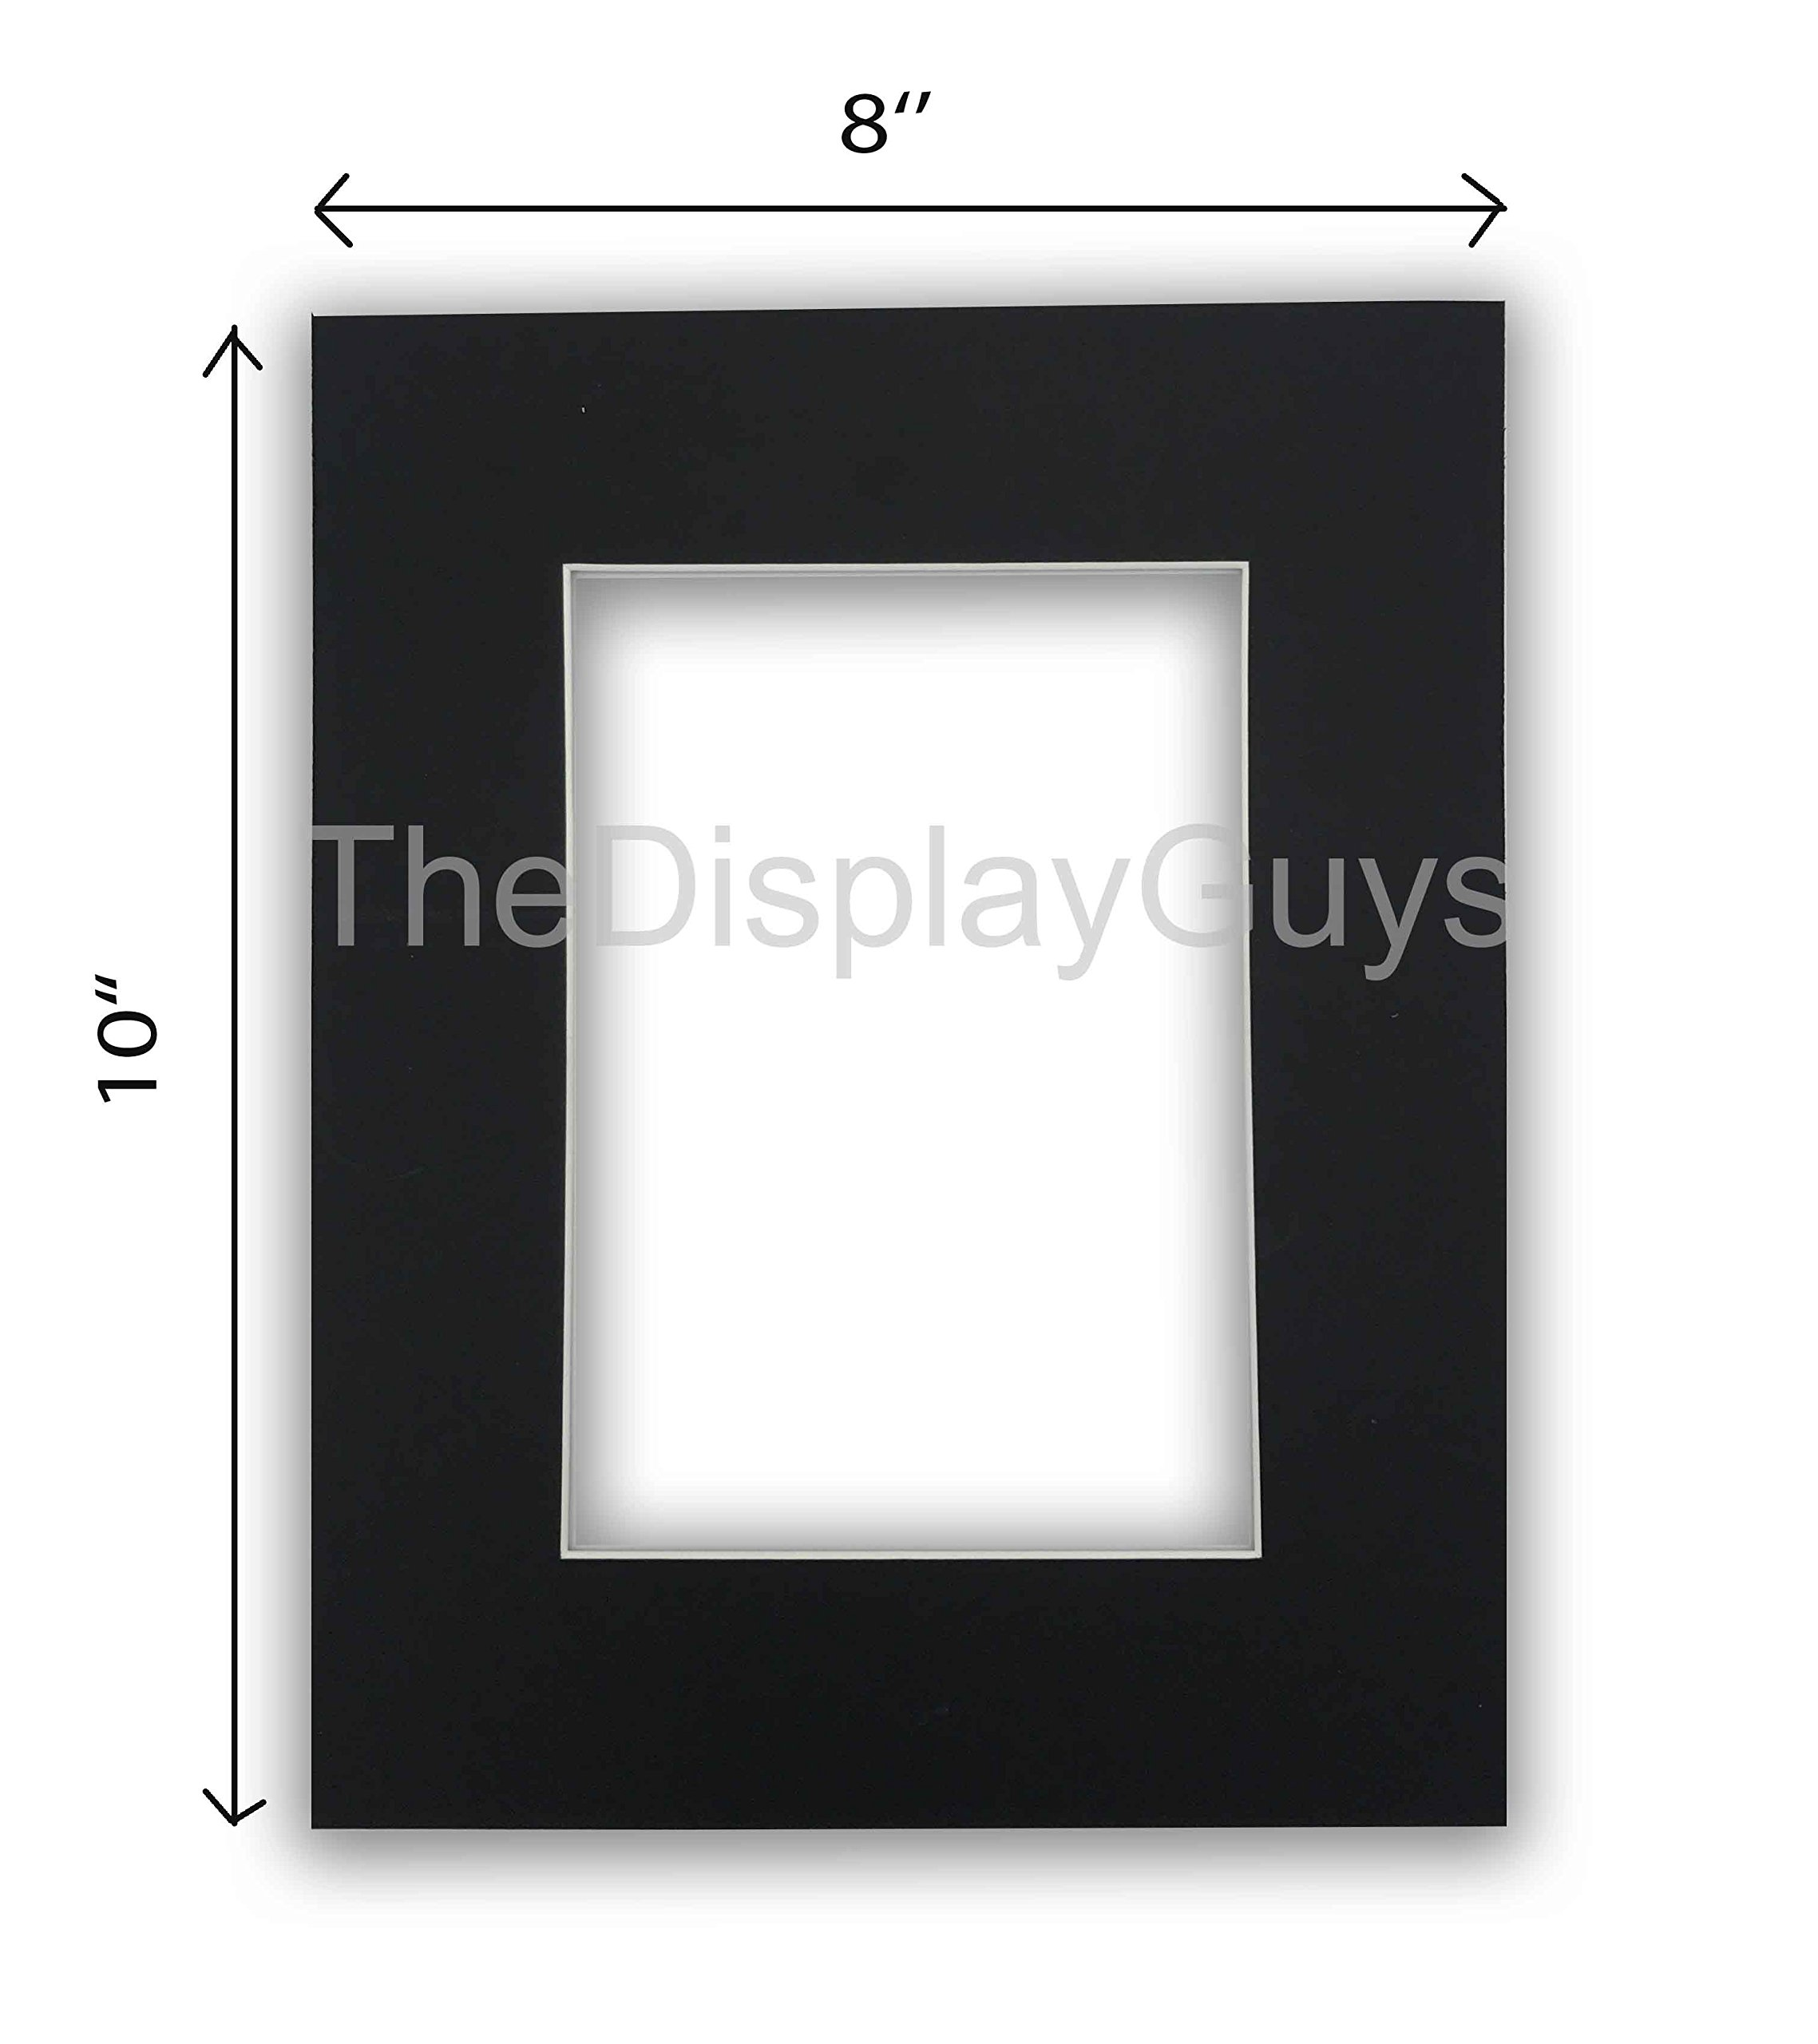 The Display Guys, Pack of 10pcs inch Acid-Free Black Pre-Cut Picture Mats White Core Bevel Cut Frame Mattes for Photo (8x10 Inch Black Mats) by The Display Guys